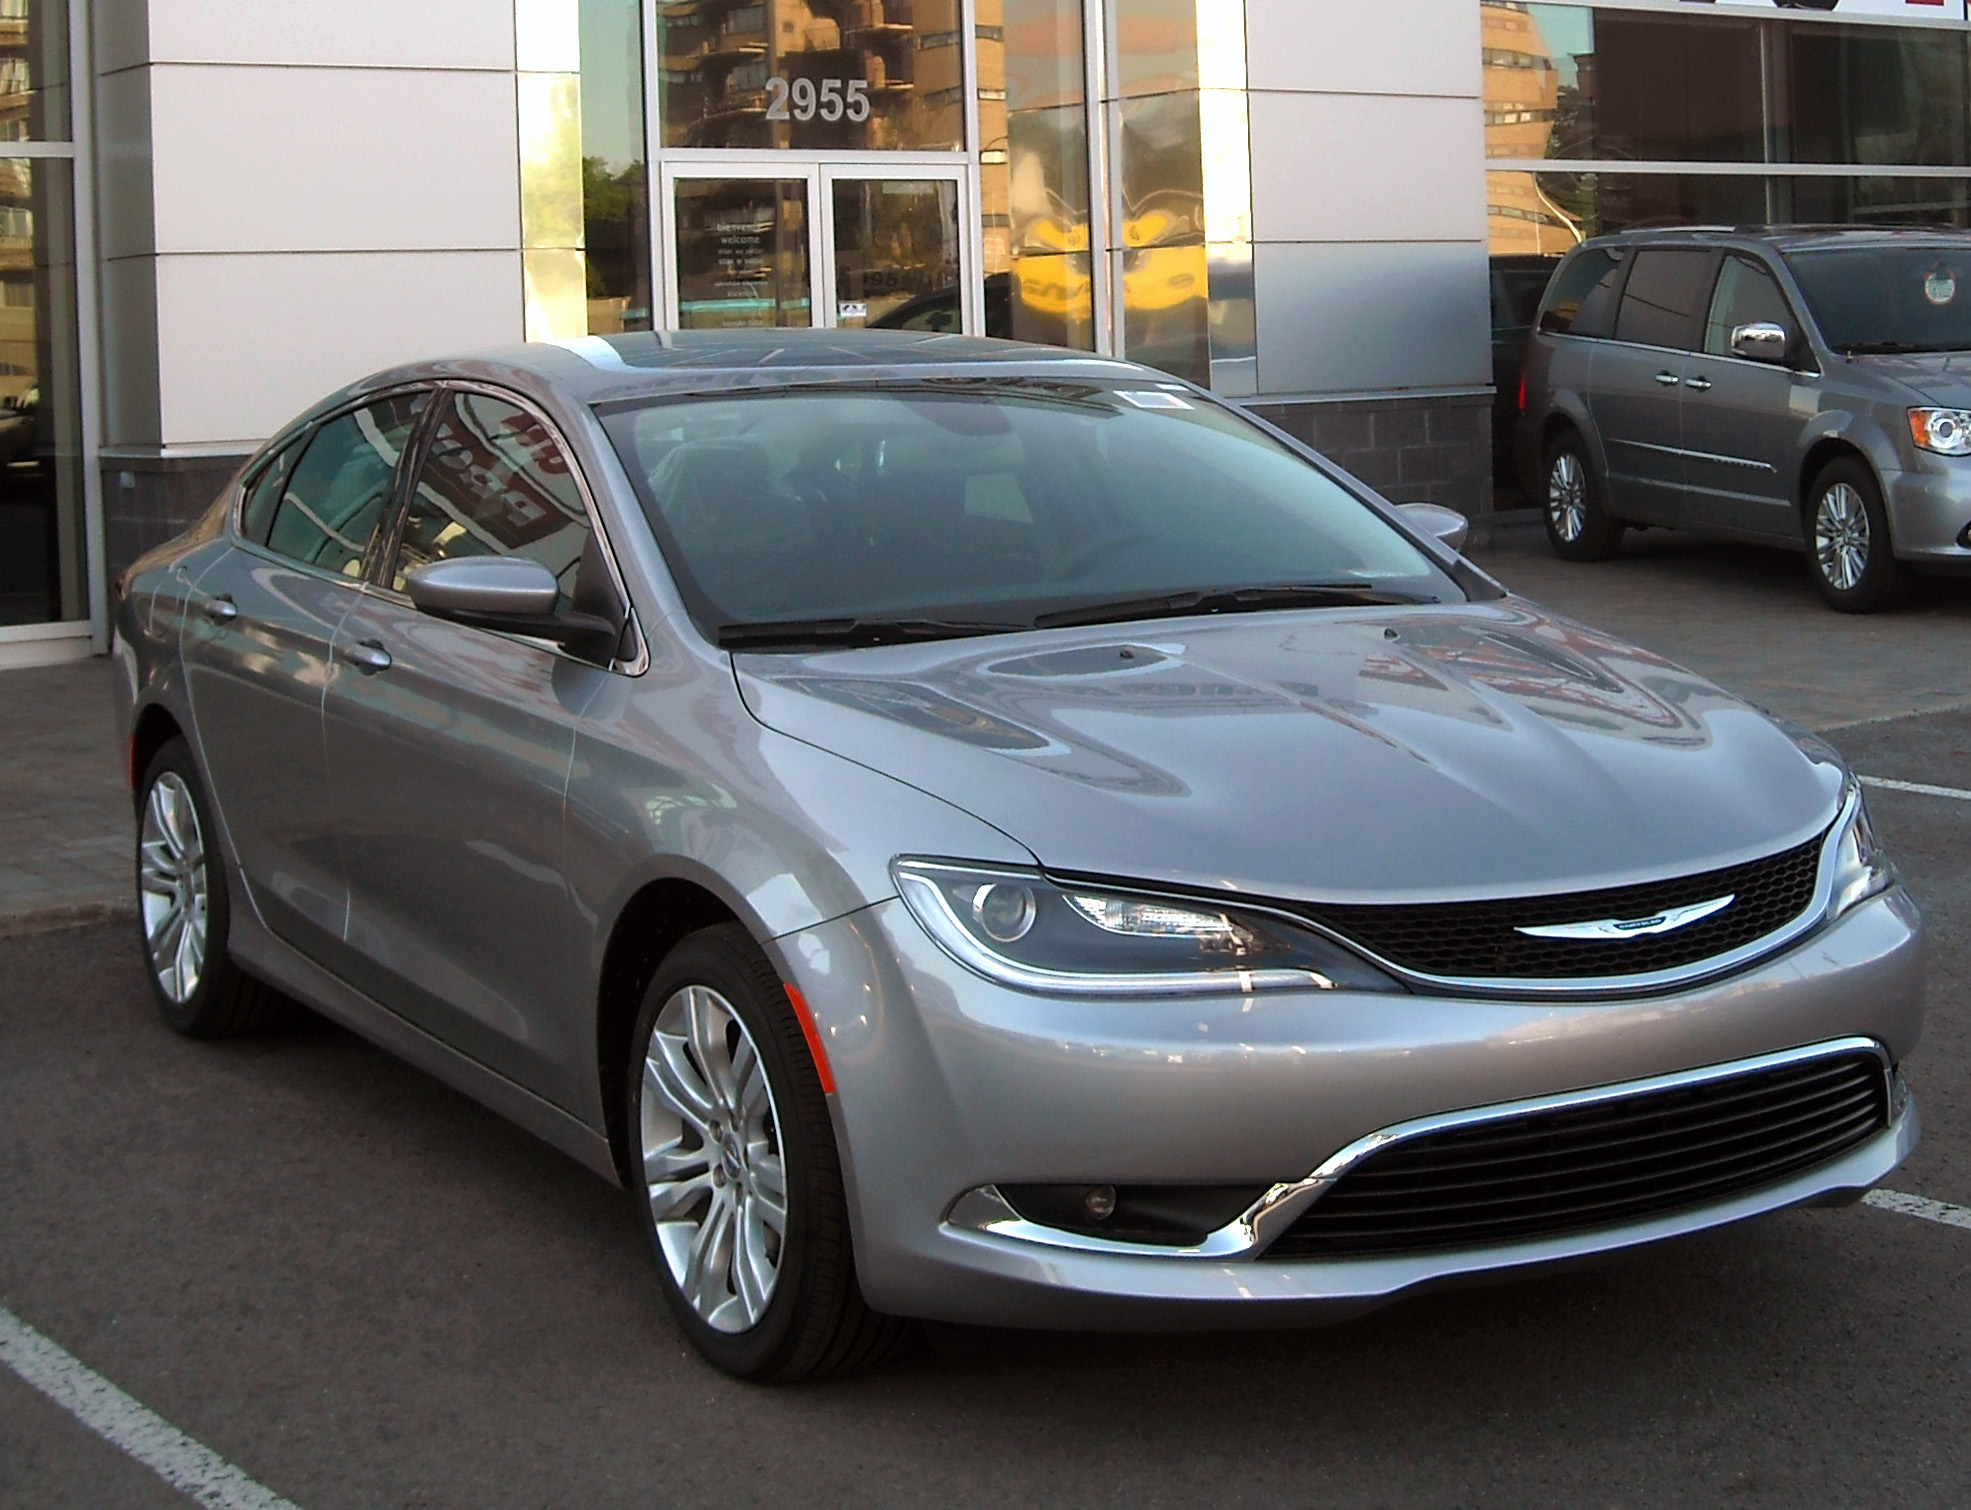 Chrysler 200 #2